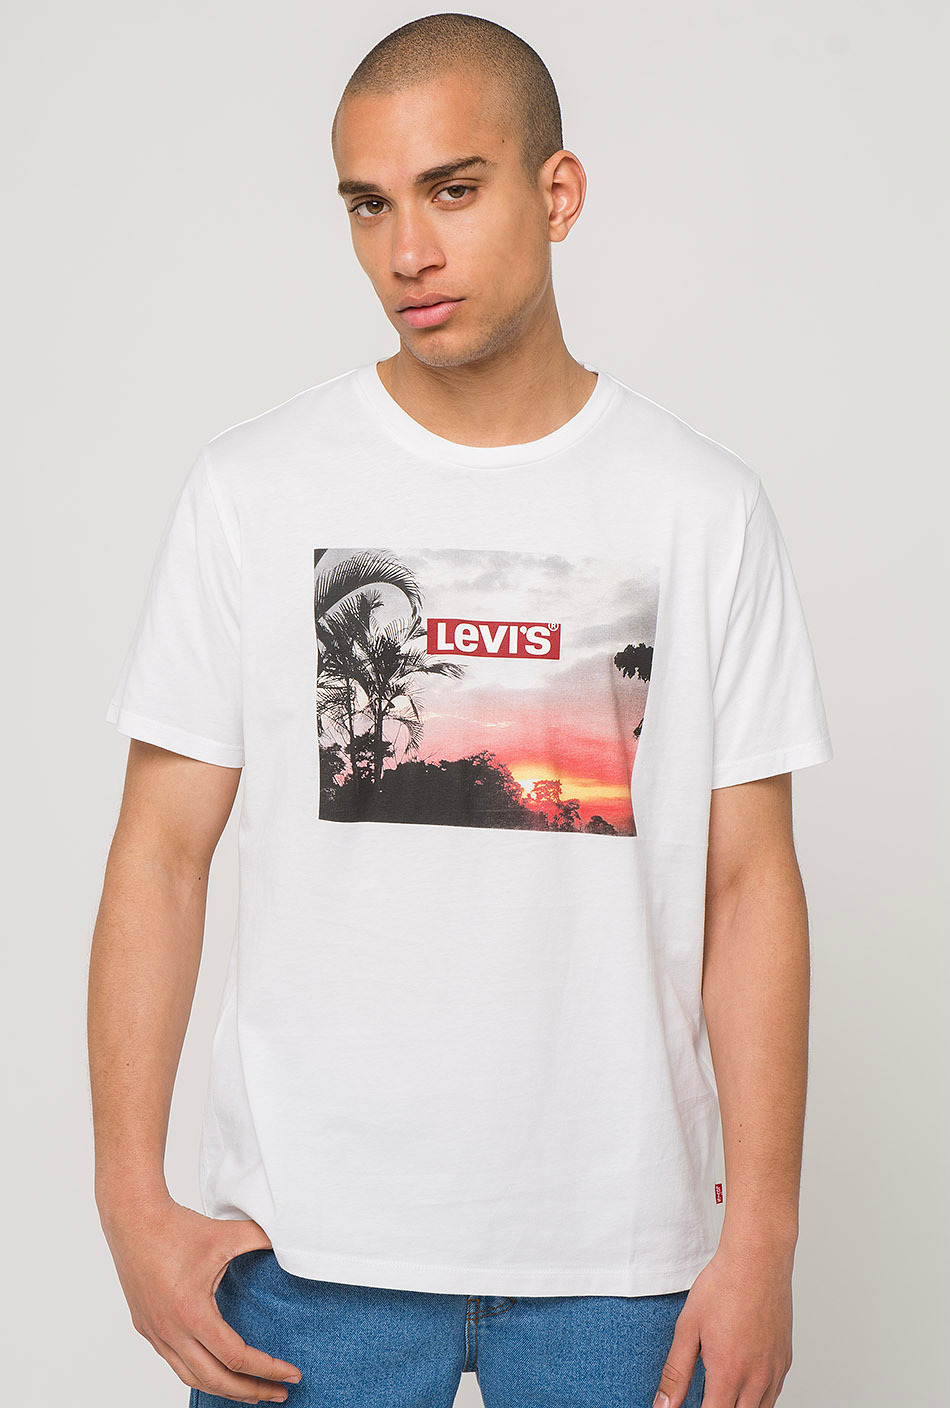 Levi's Graphic Tee Set in White